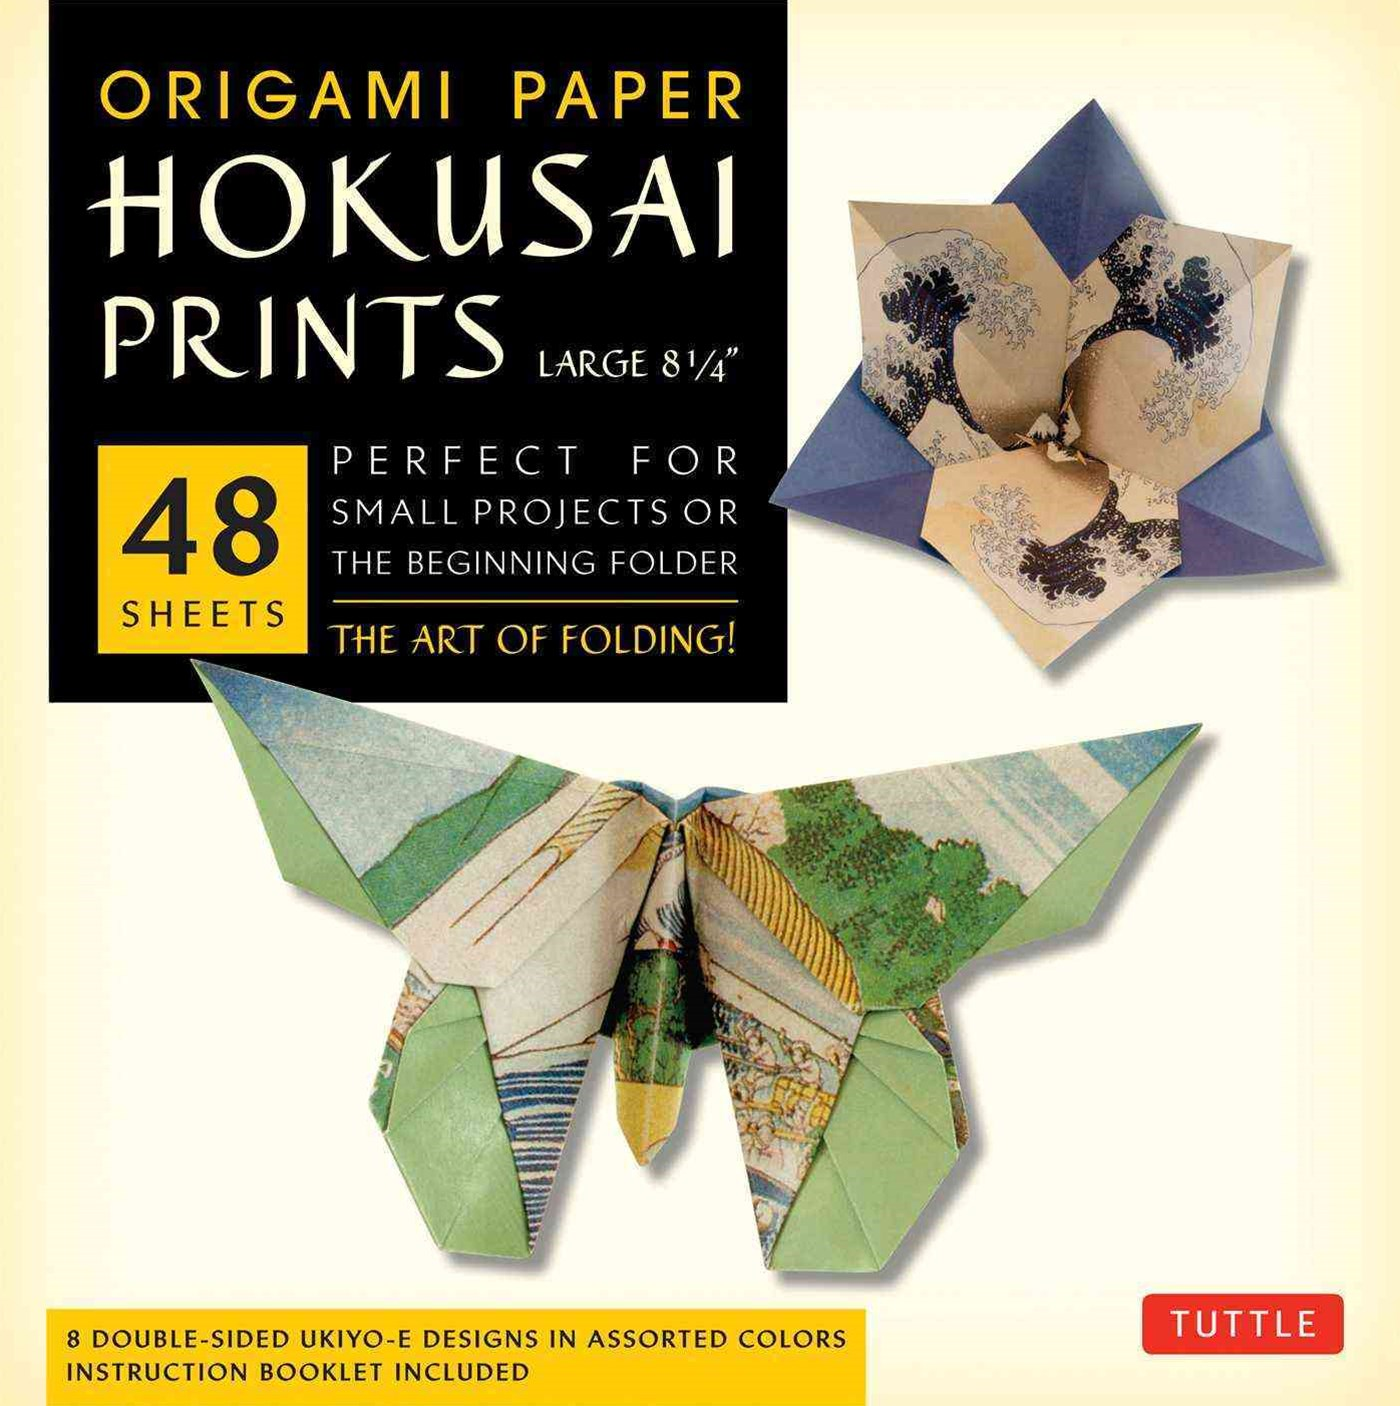 Origami Paper Hokusai Prints (Large 8 1/4&quote;)